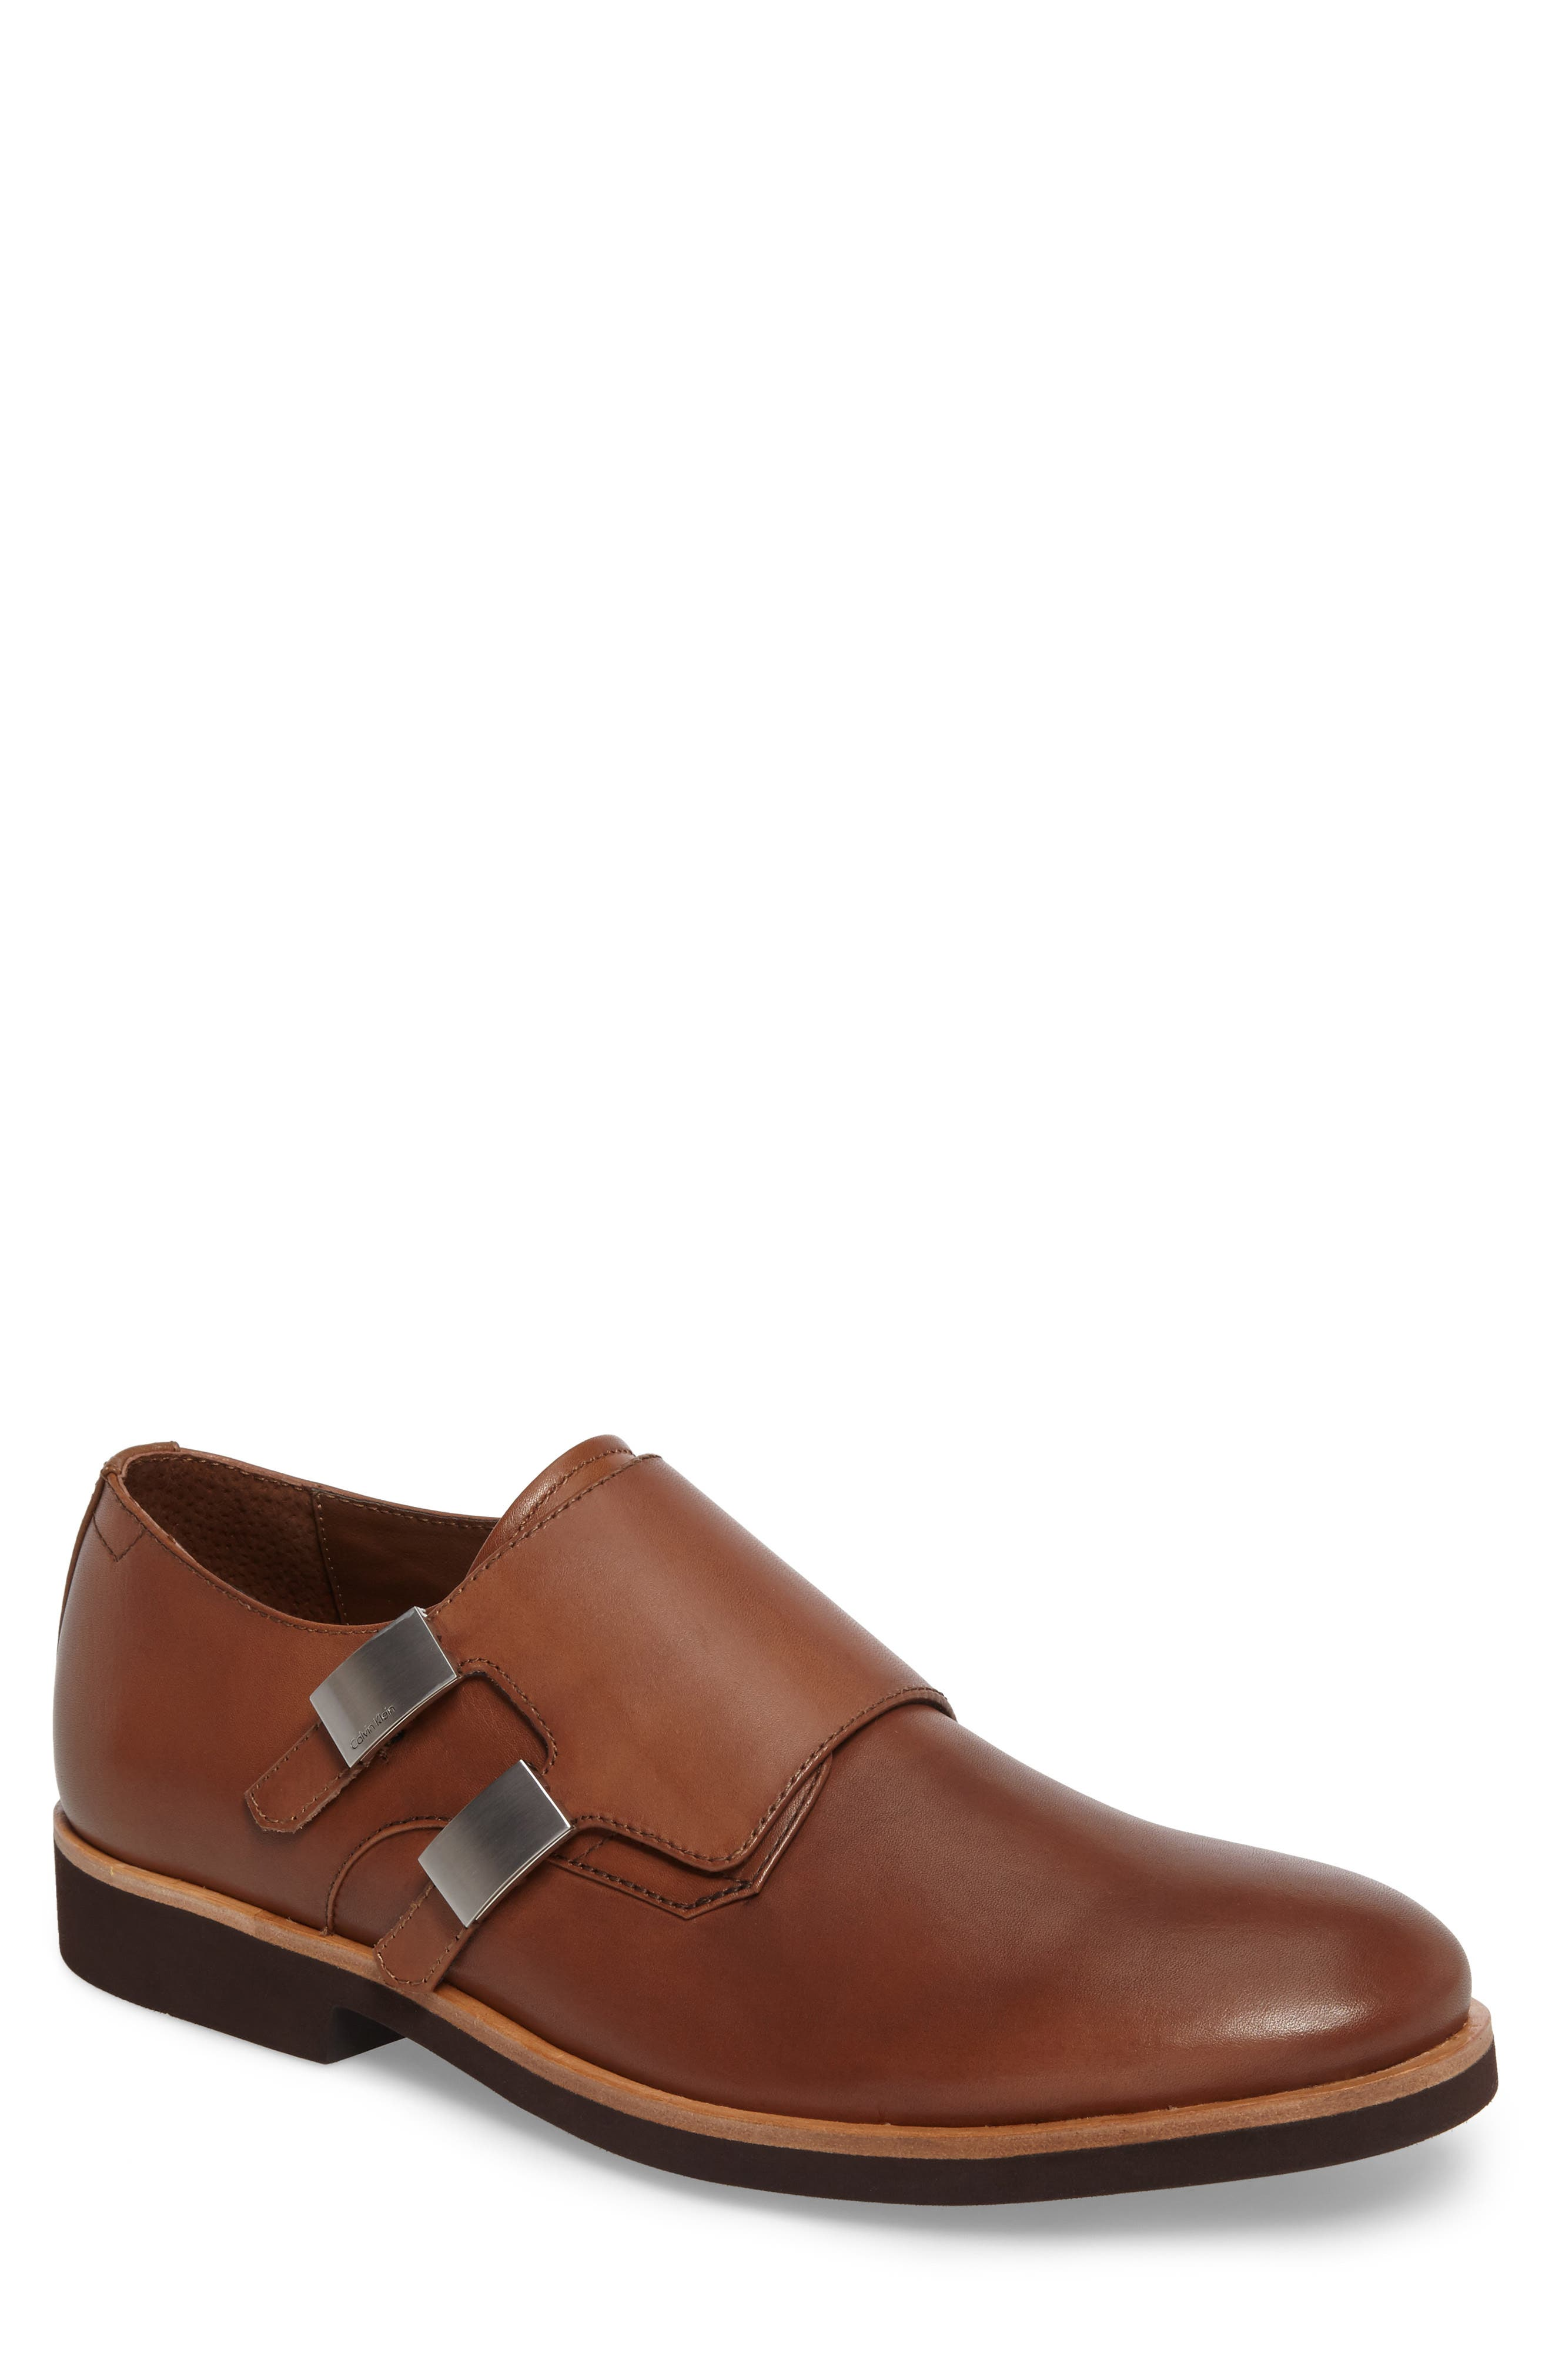 Finnegan Double Monk Strap Shoe,                             Main thumbnail 2, color,